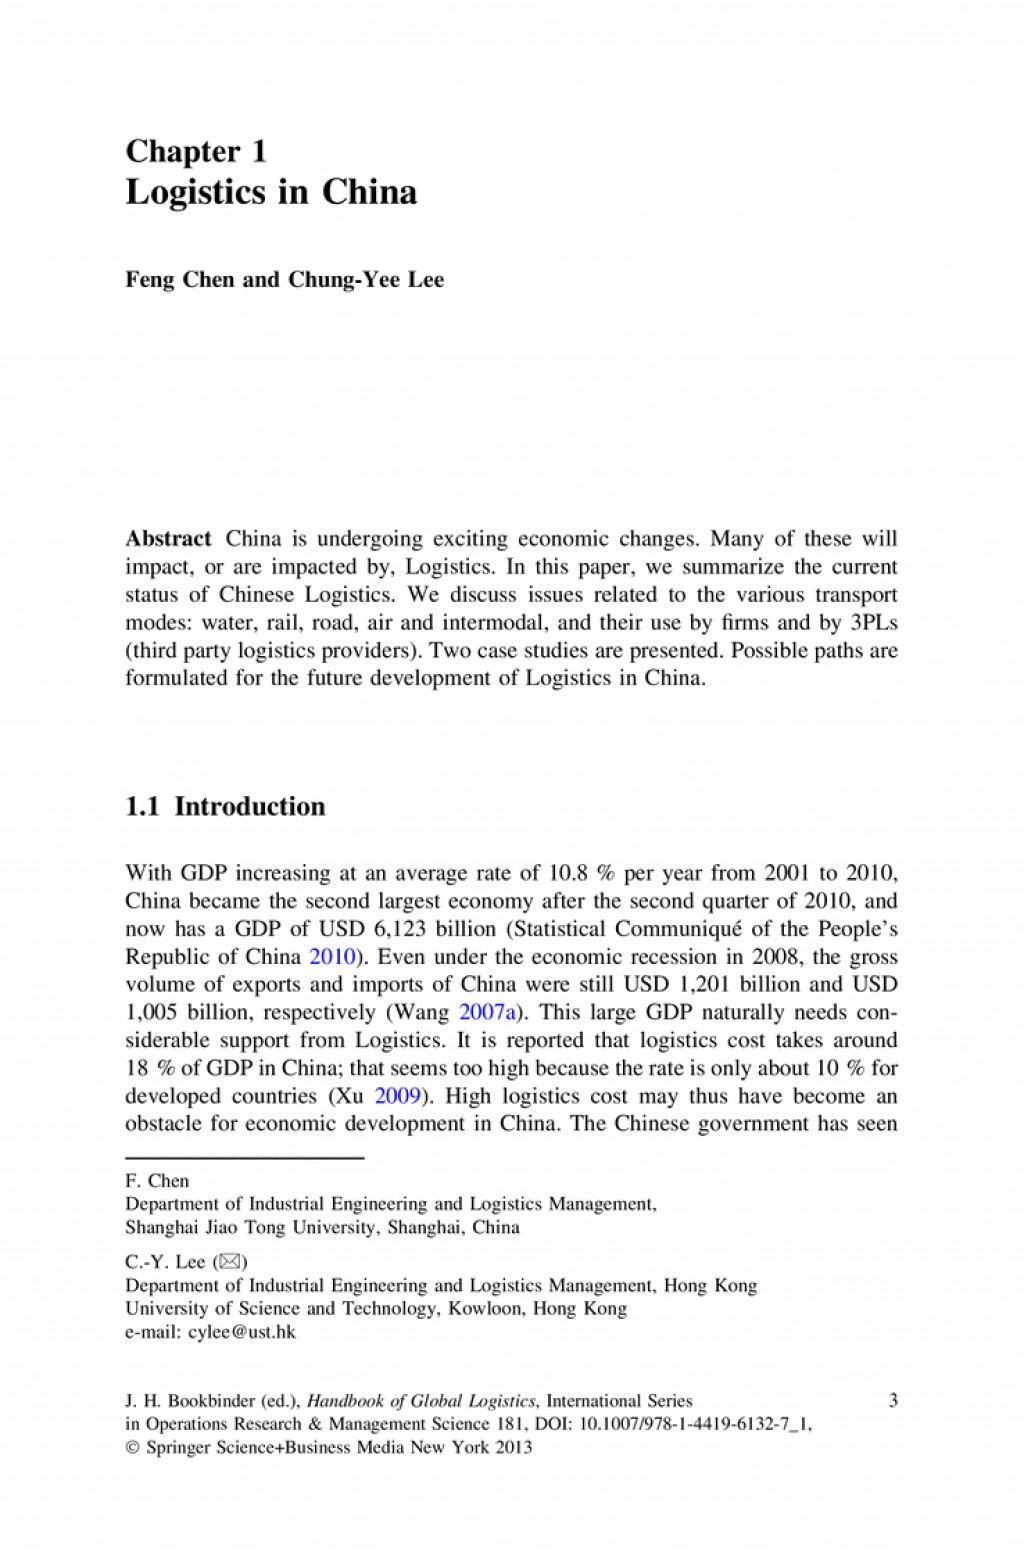 008 Essay Example How To Write History Introduction Letter For Transportation Business Highest Quality Transport Plan Sample Of Good Executive Summar Outline Great Pdf Grade Learners Stupendous A Paragraph Extended Large